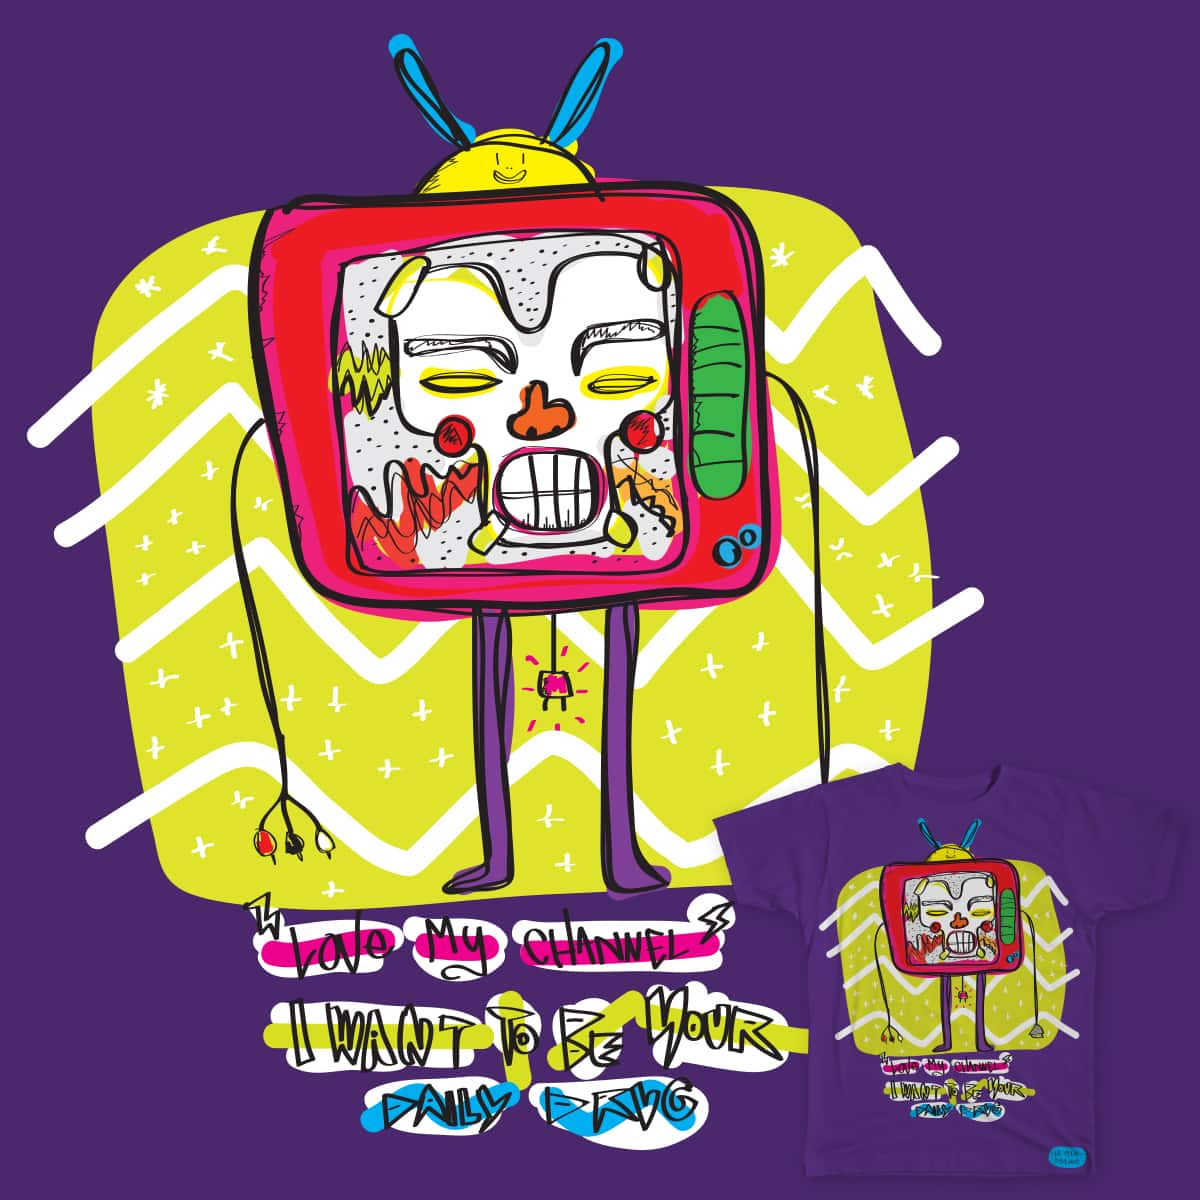 Love my Channel by lepetitmutant on Threadless